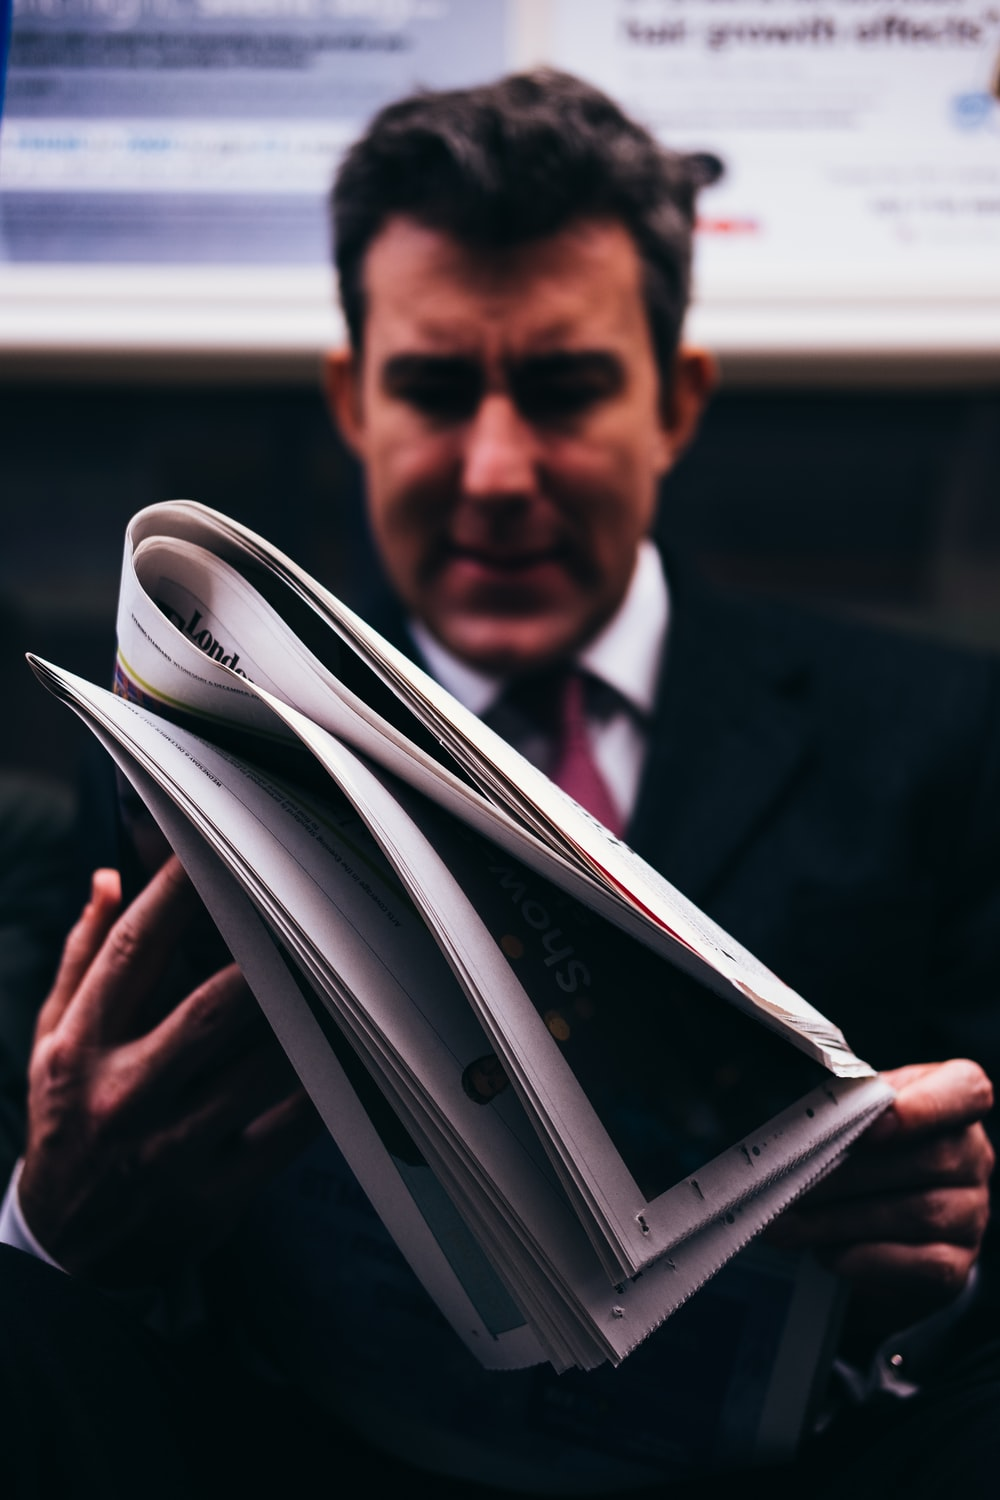 selective focus photo of man in suit holding newspaper